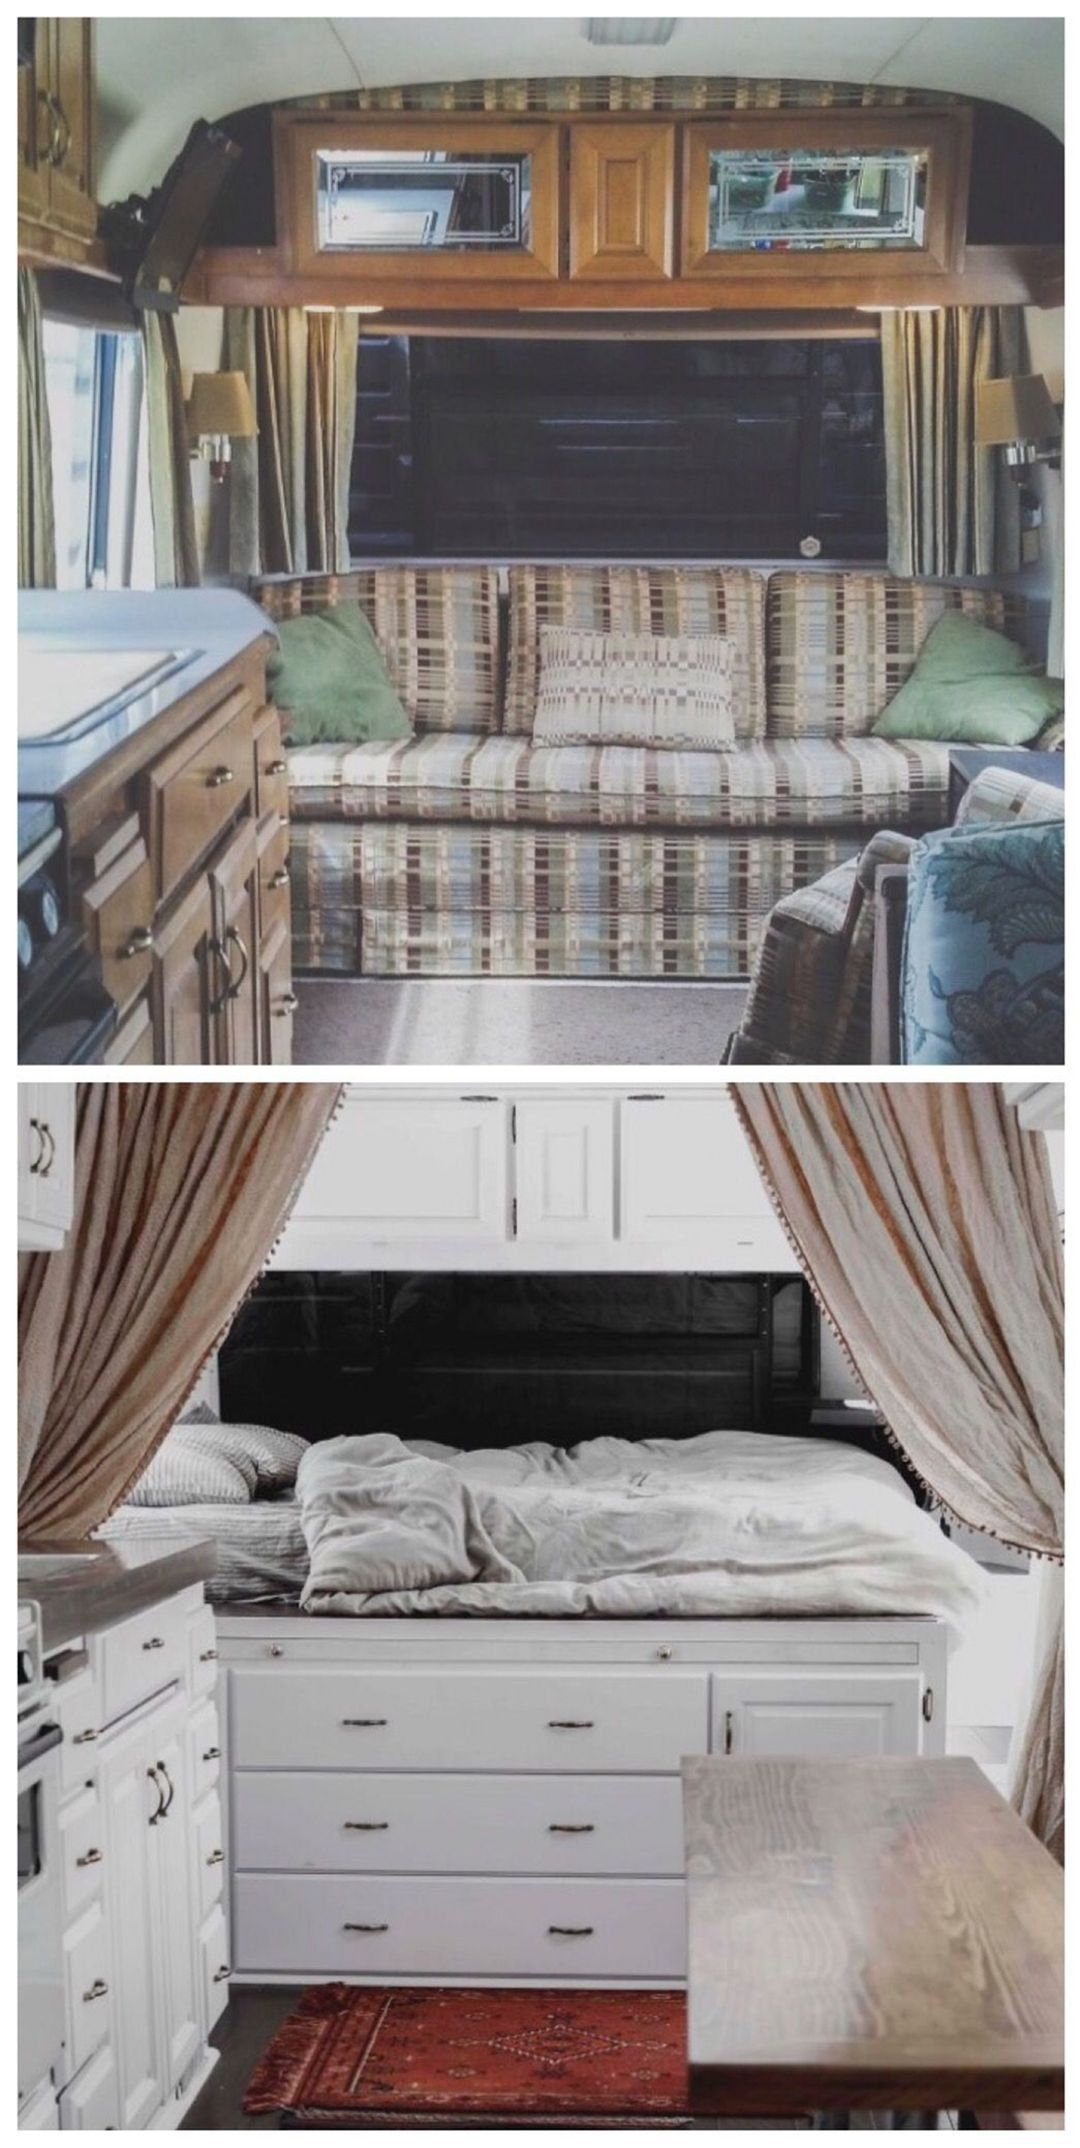 45 Amazing Tiny Camper Remodel Ideas With Before And After Picture Remodeled Campers Vintage Camper Remodel Camper Trailer Remodel